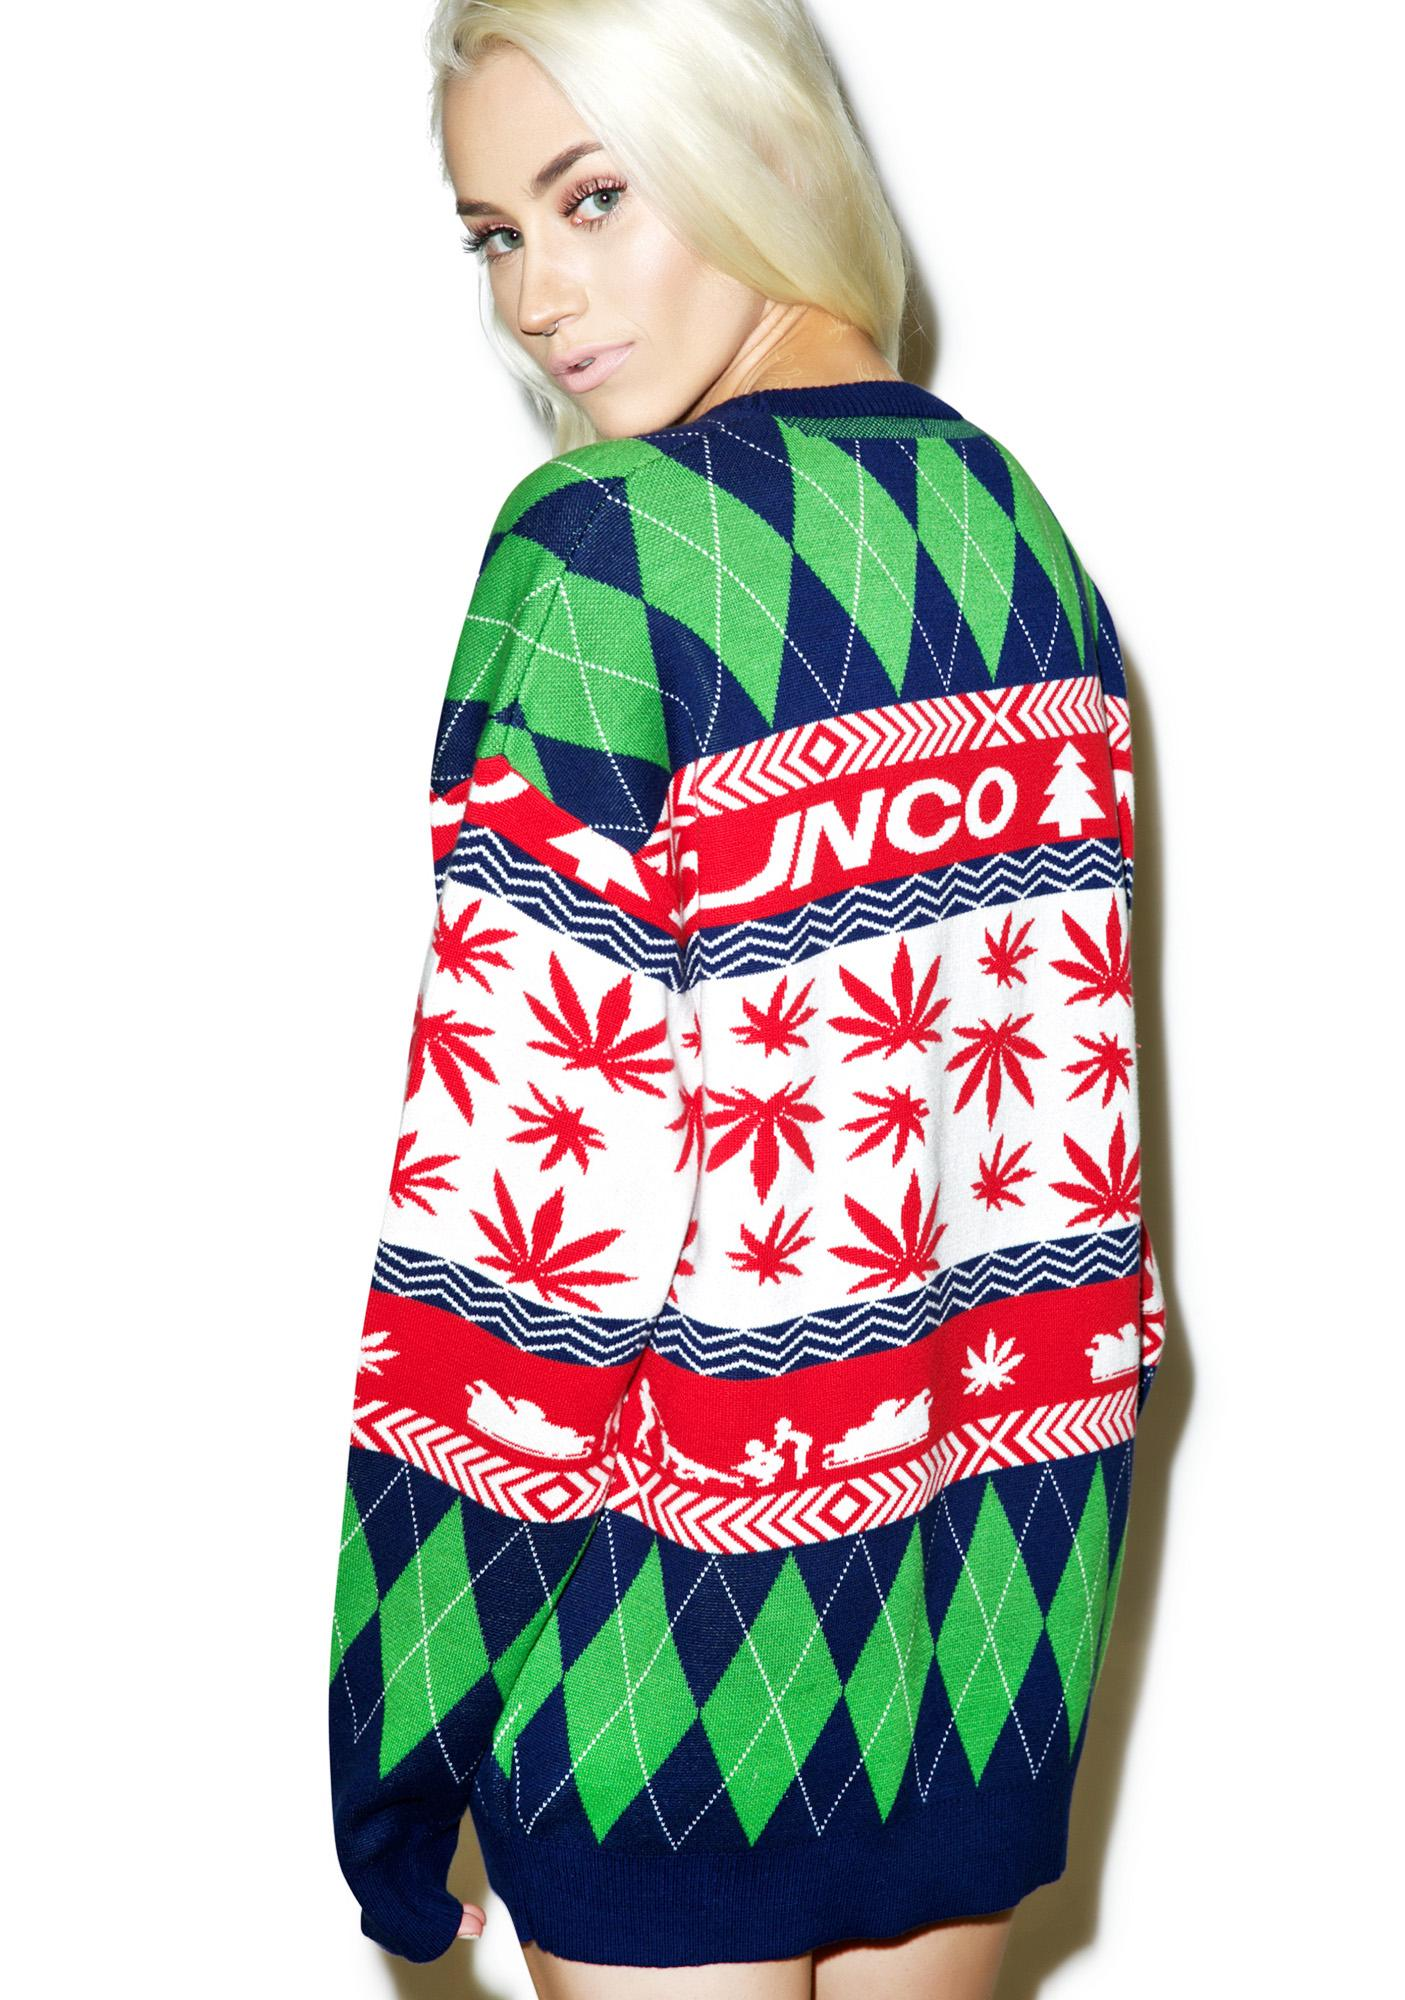 JNCO FOUR20 Ugly Christmas Sweater